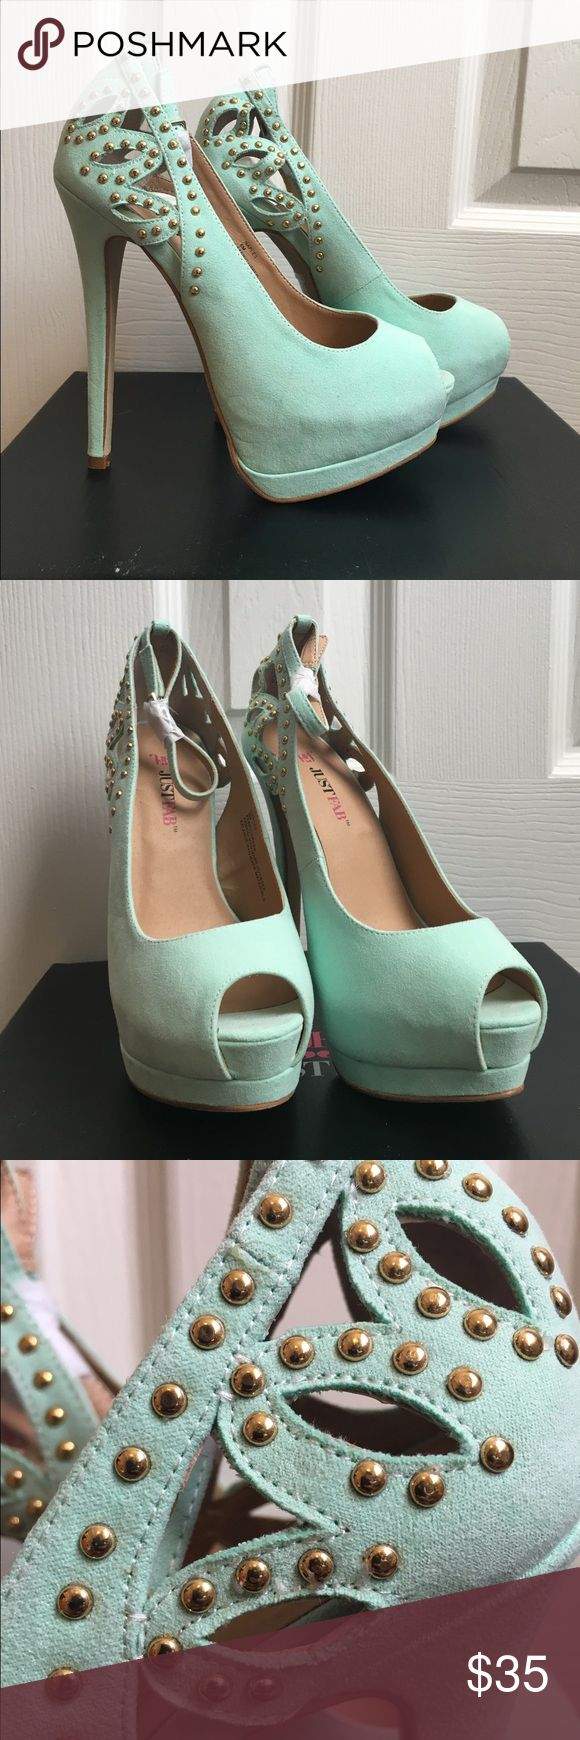 """Mint Pumps Mint with gold accents pumps. I have not worn these. 😞 Open-toed and strapped. Missing one gold piece, but it is in the box if you wanted to glue it back on. 6"""" heels. JustFab Shoes Heels"""